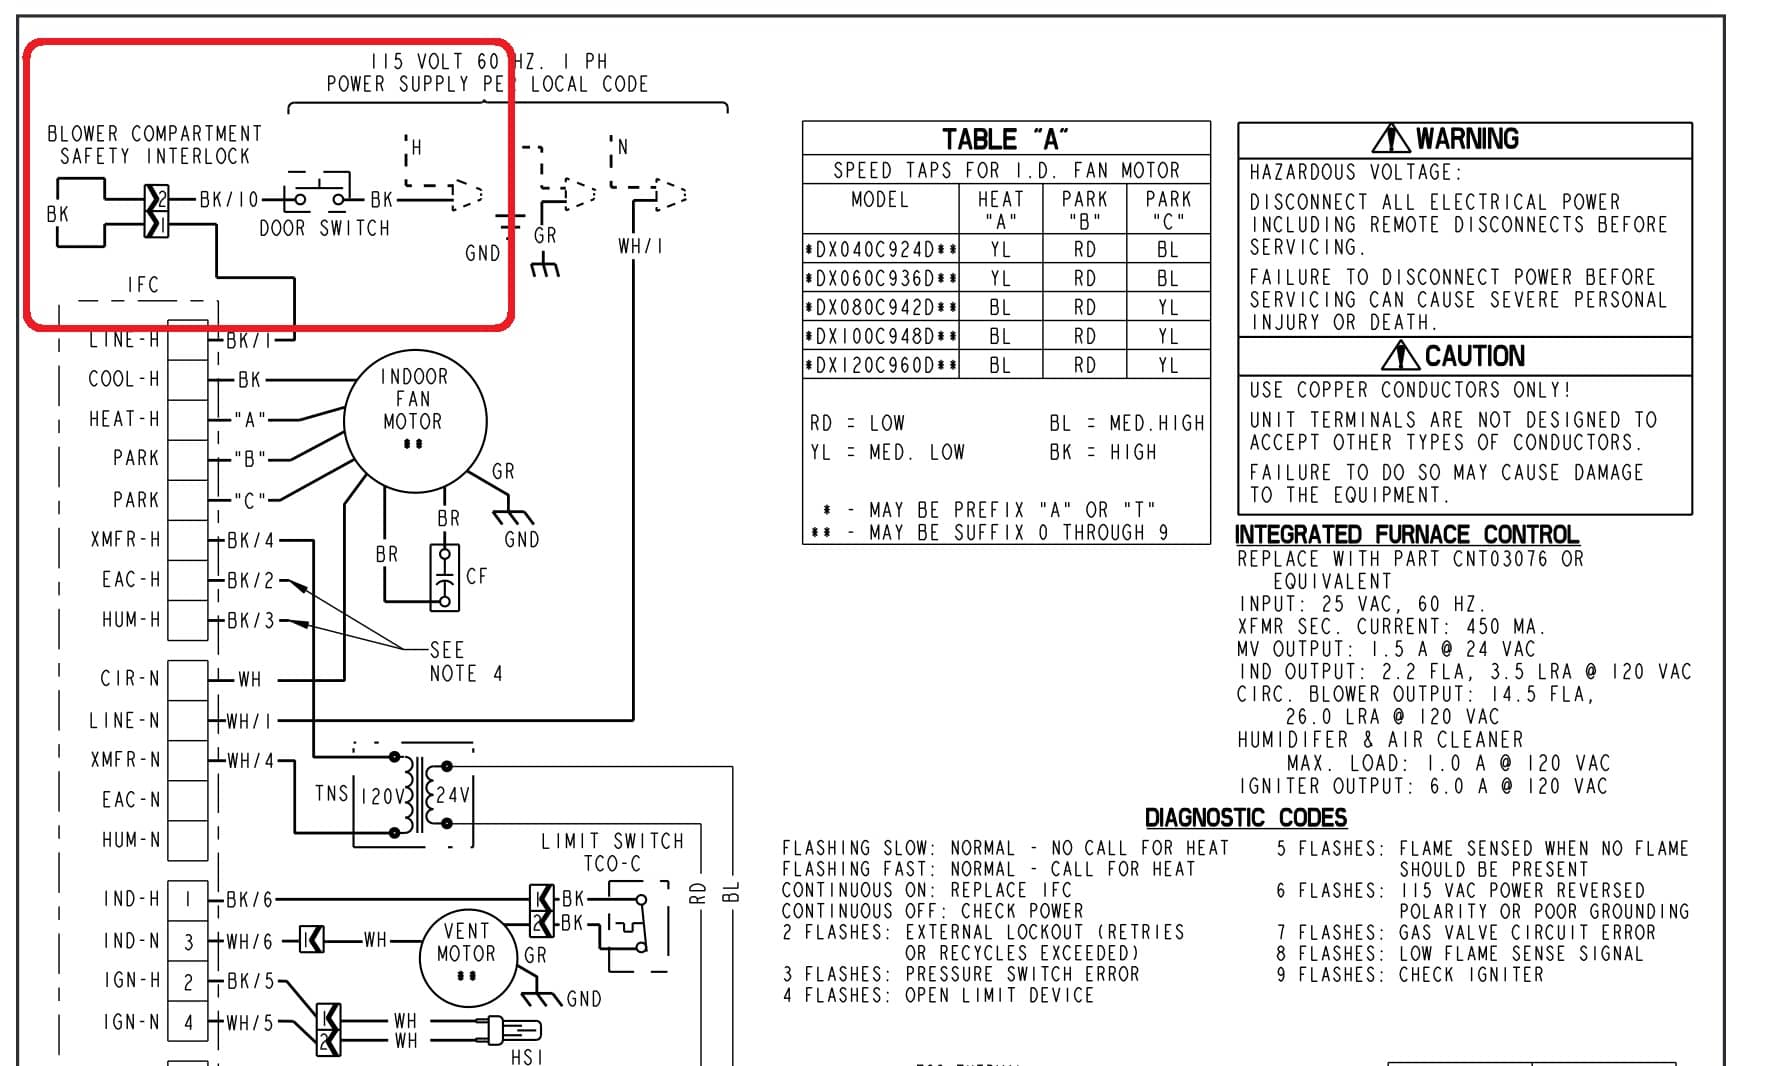 heat pump air handler wiring with Blower Door Interlock Switch on Blower Door Interlock Switch furthermore Post goodman Aruf Wiring Diagram 514561 moreover Honeywell Smart Switch Wiring Diagram furthermore Home Air Conditioner Electrical Diagram additionally Trane Xe90 Furnace Thermostat Wiring Diagrams.